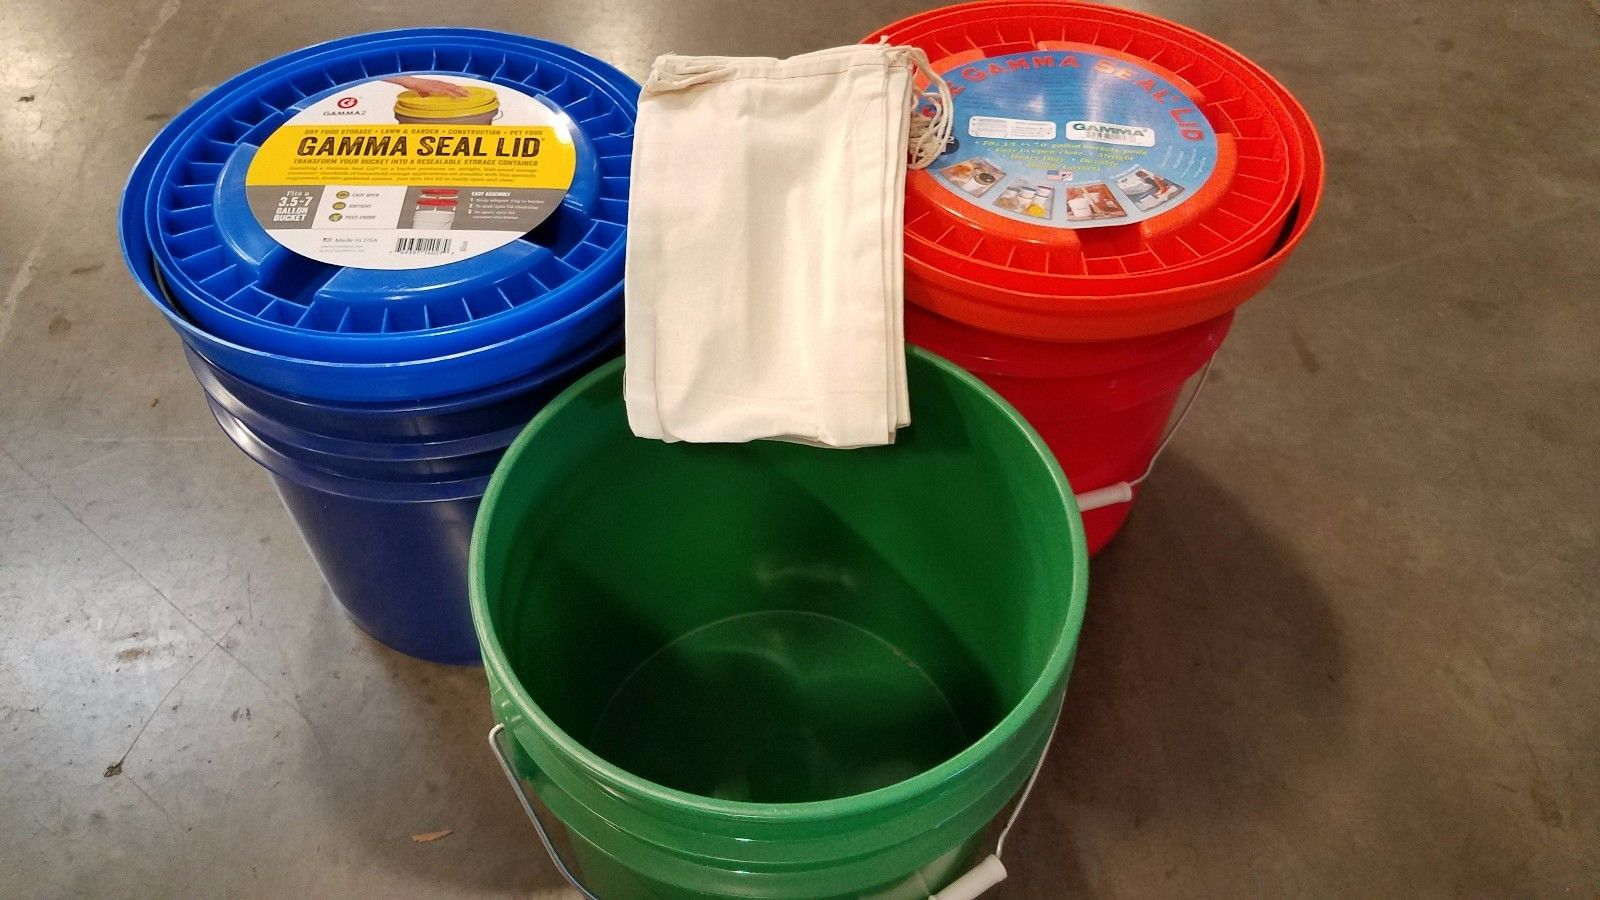 FOOD STORAGE KIT Gamma Seal 3.5 gallon Bucket and Lid Combo 3-Pack 1